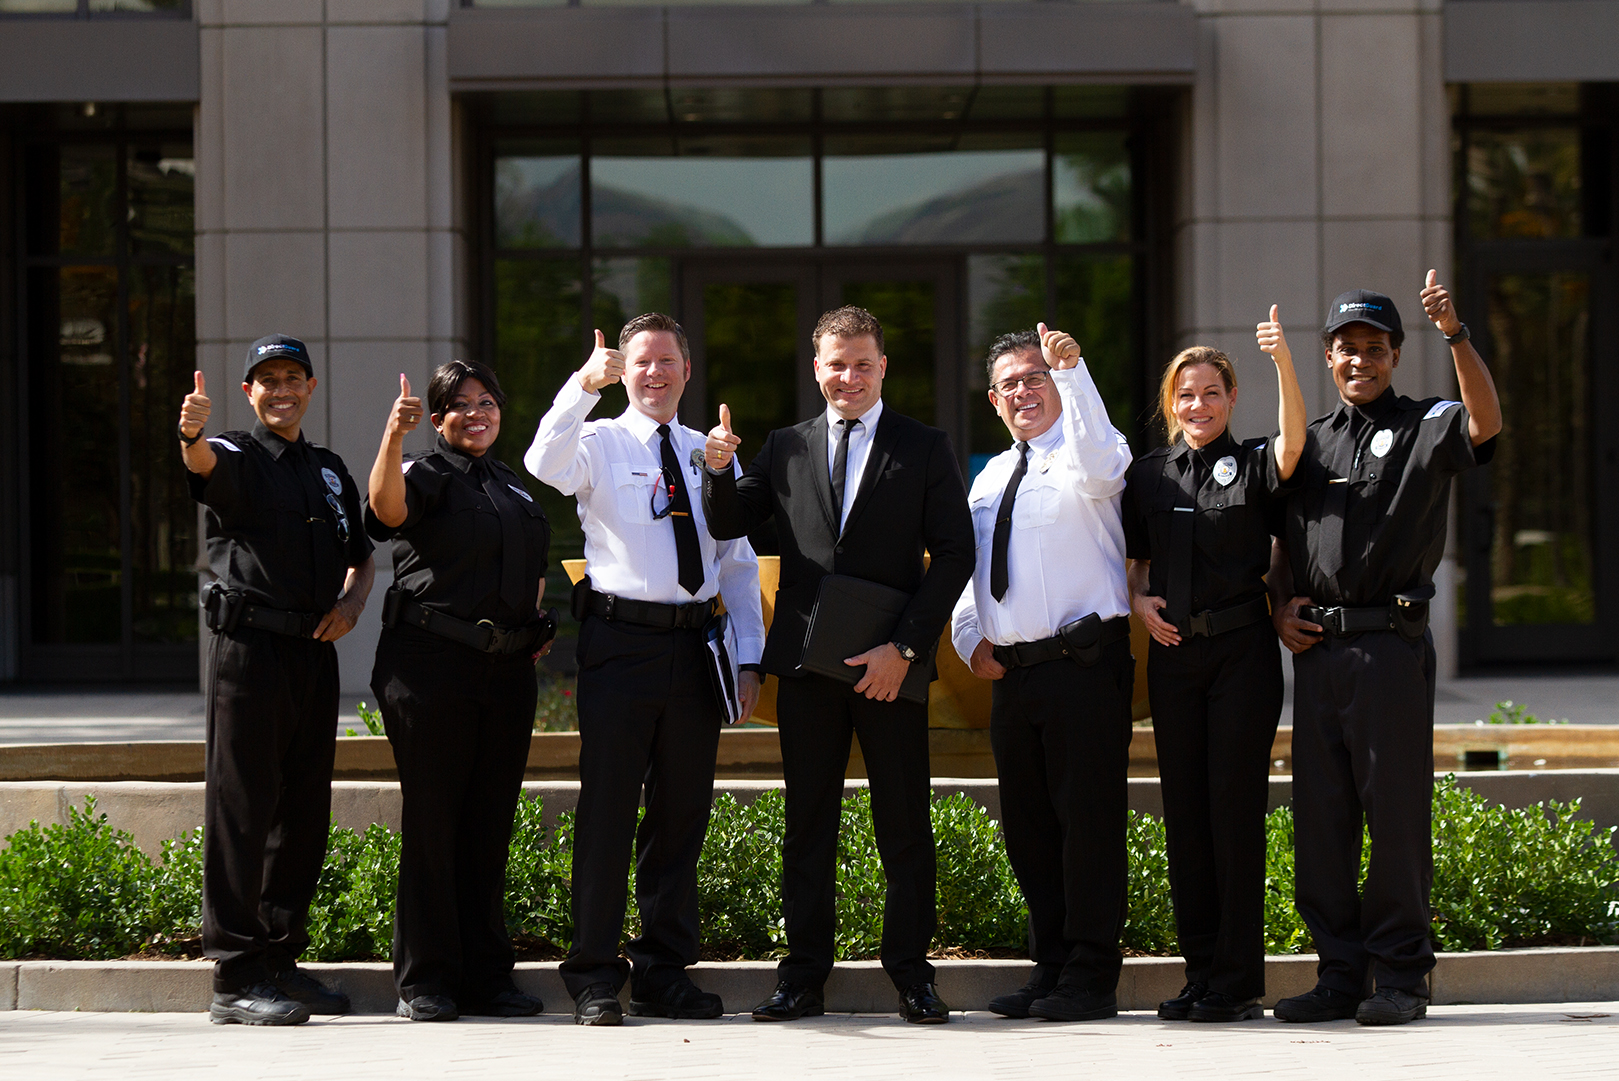 why choose Direct Guard Security Guard Services